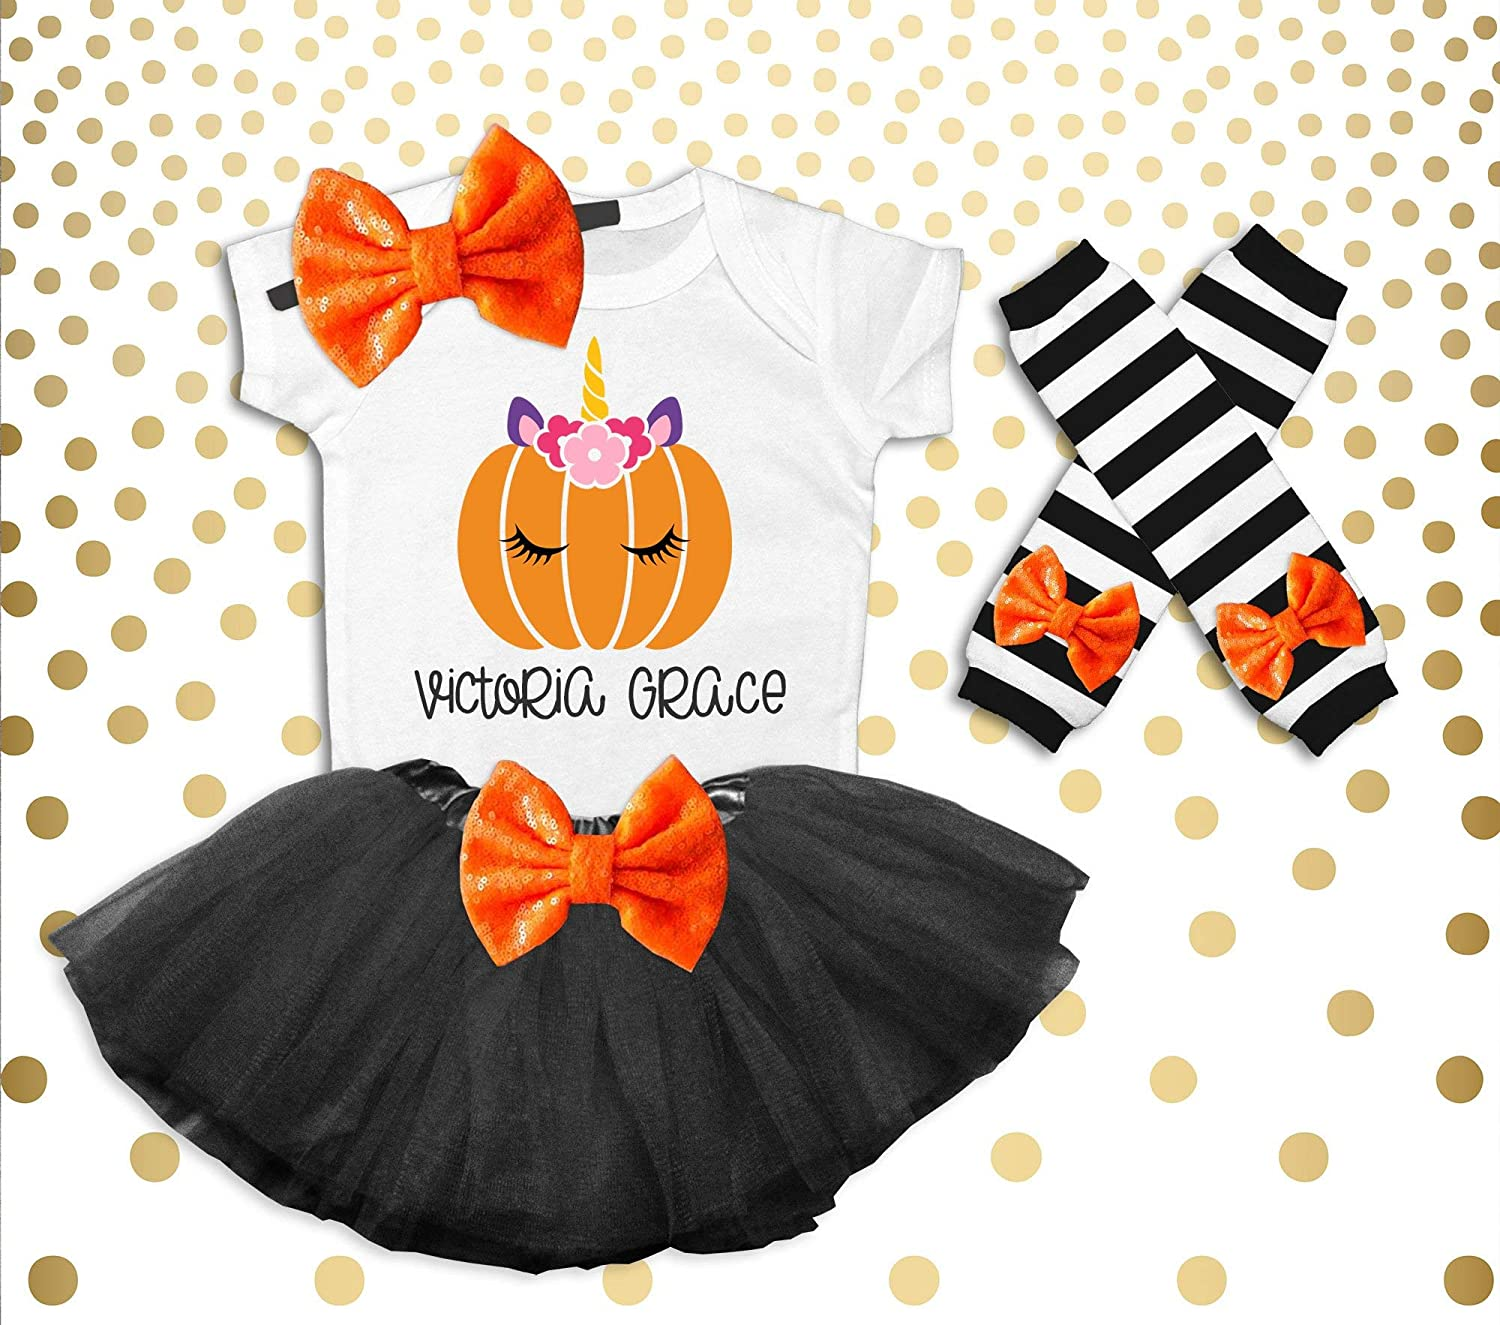 Girl's Halloween Outfit Girl's Halloween Costume Halloween Pumpkin Shirt Halloween Pumpkin Patch Outfit Toddler Girls Pumpkin Unicorn